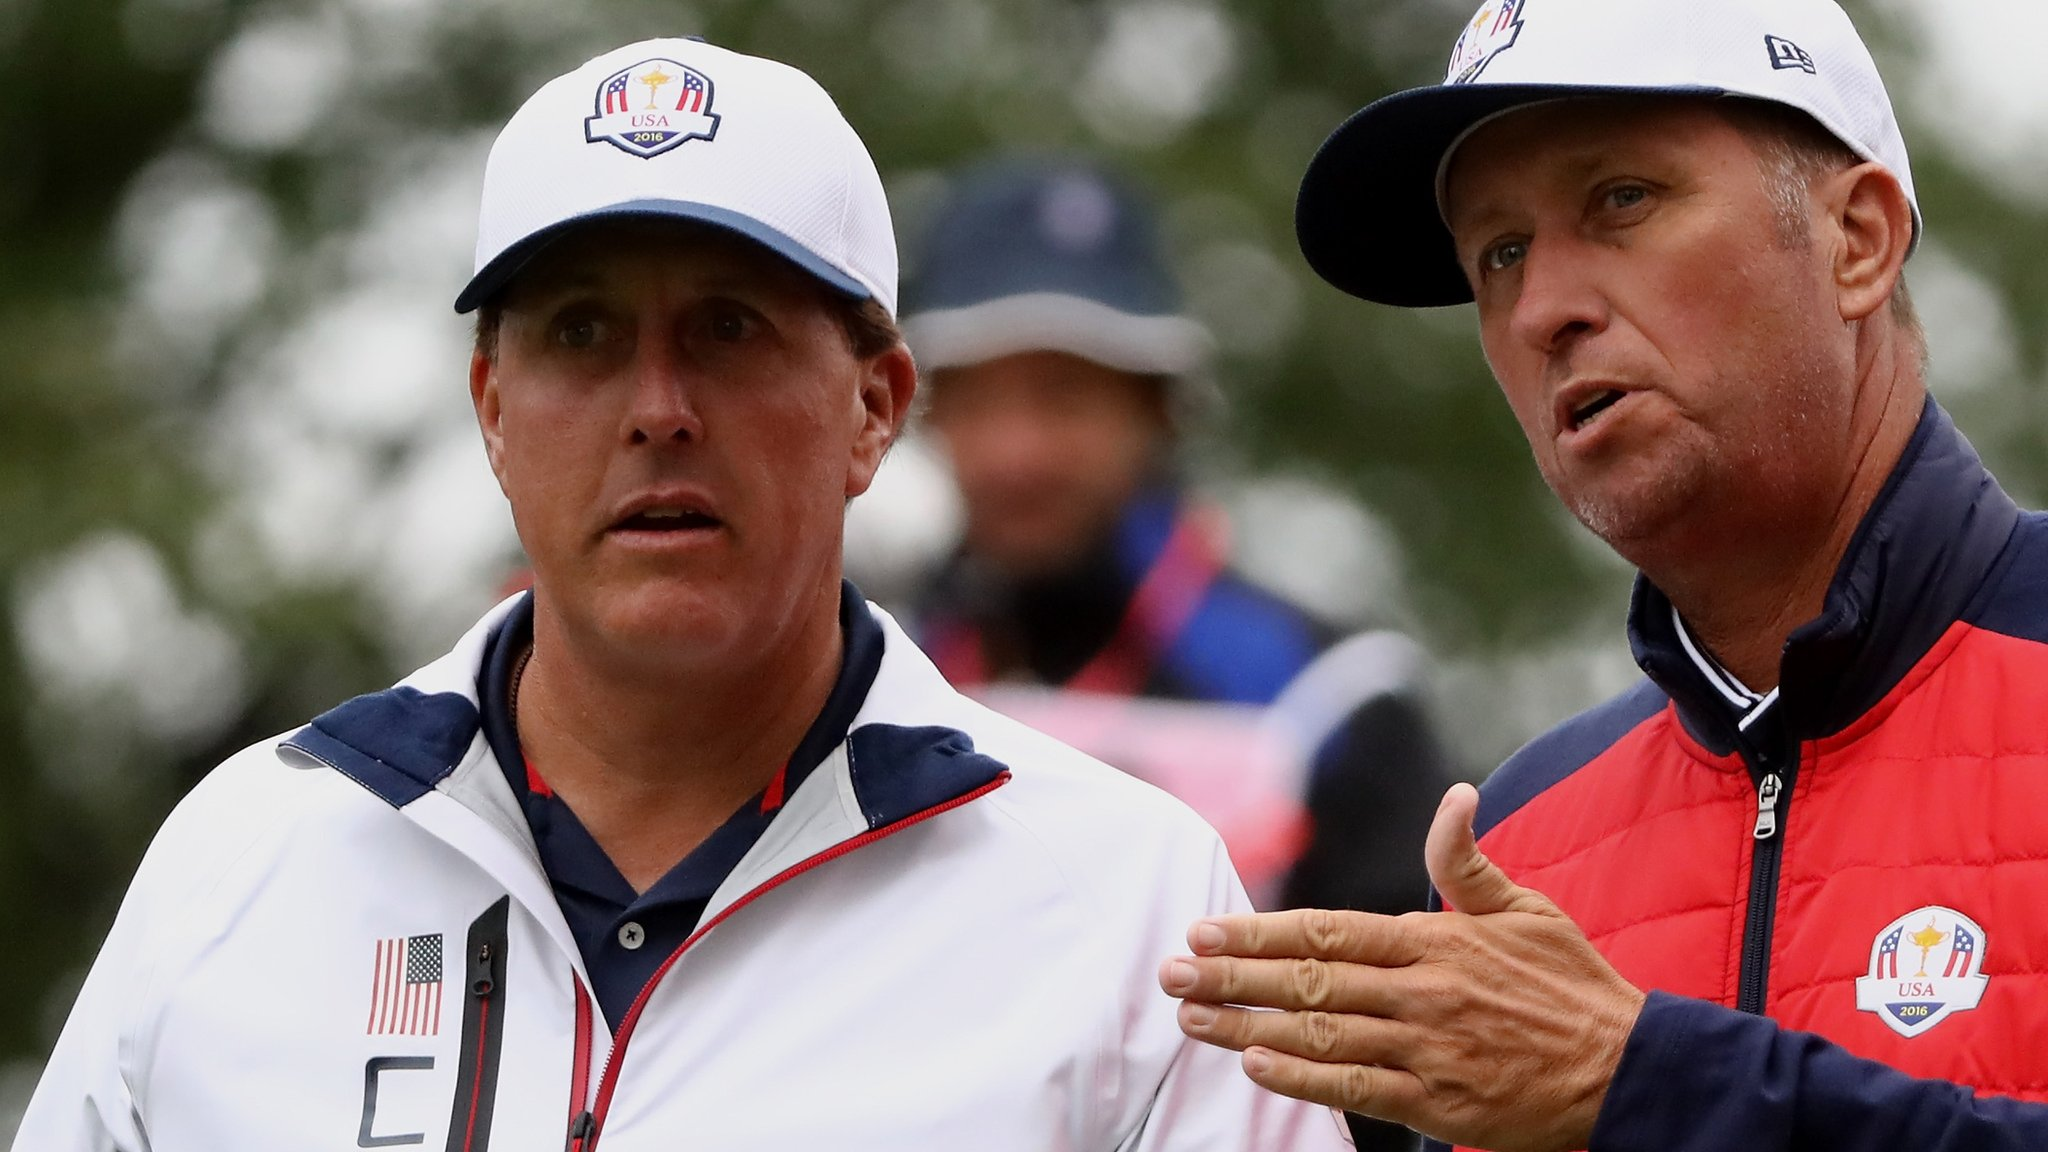 US copying Europe's Ryder Cup model, says Mickelson